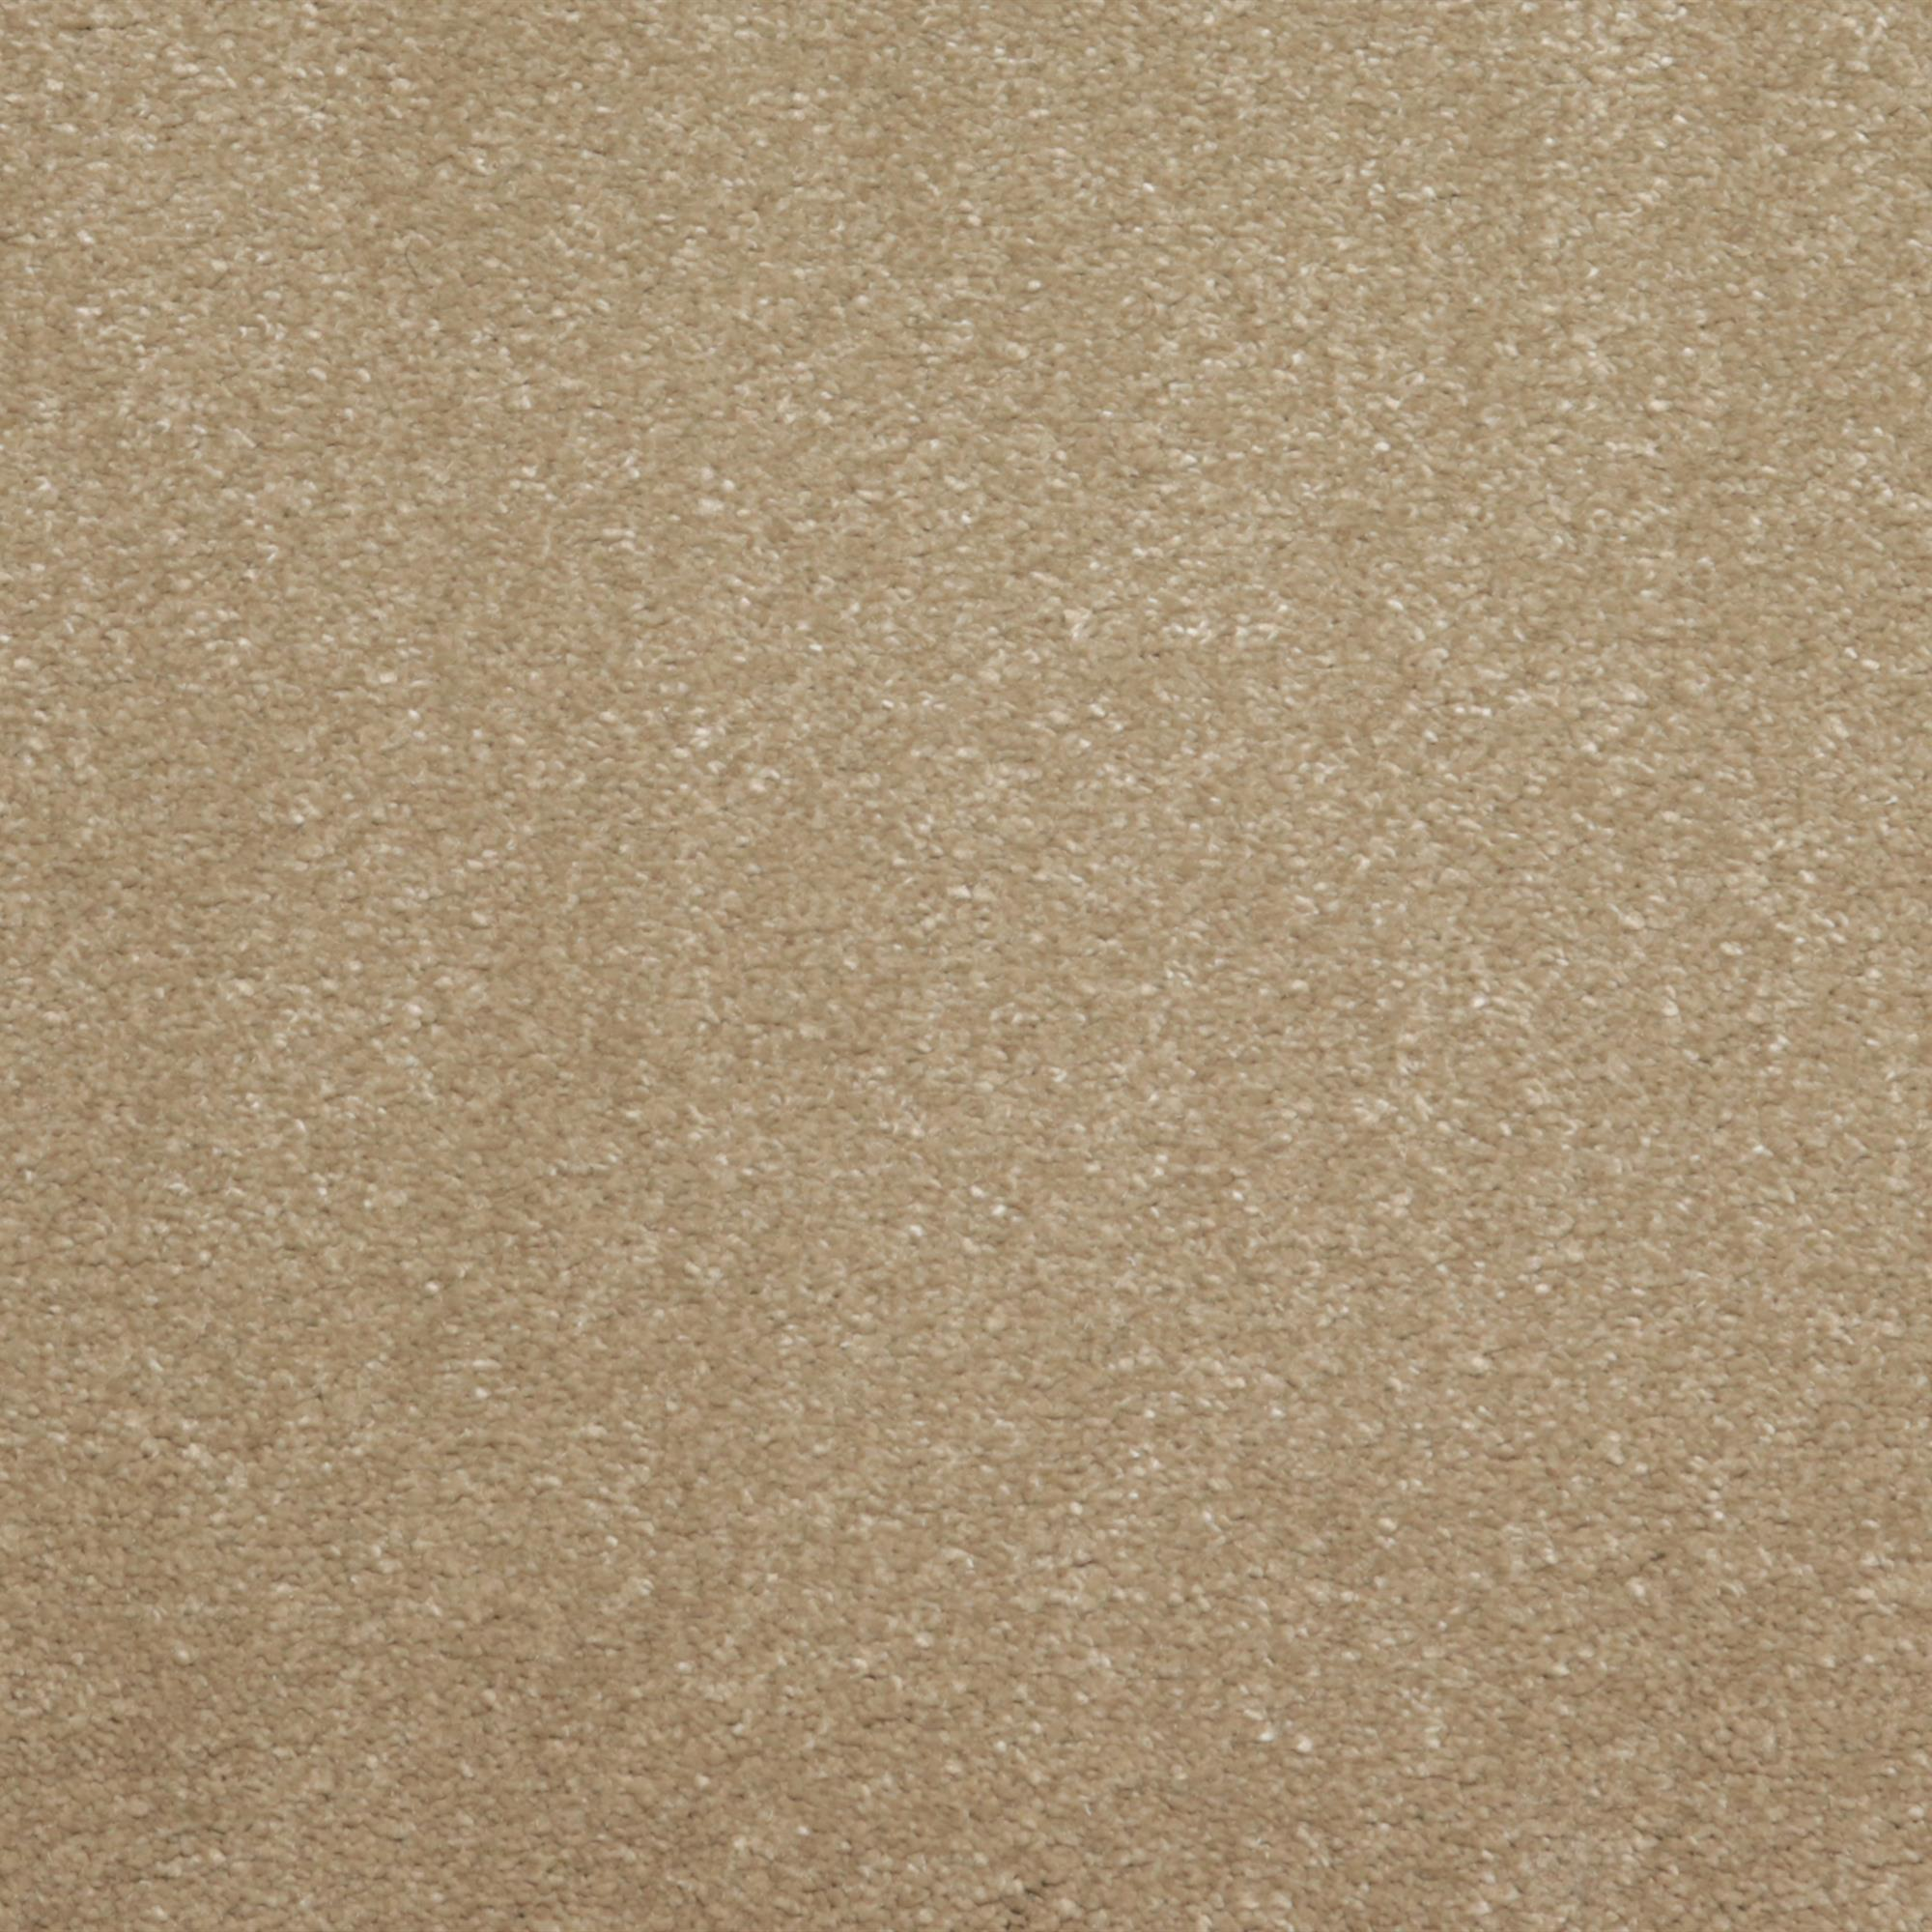 Signature Notting Hill Carpet, Notting Hill Lu805 Fortune, swatch